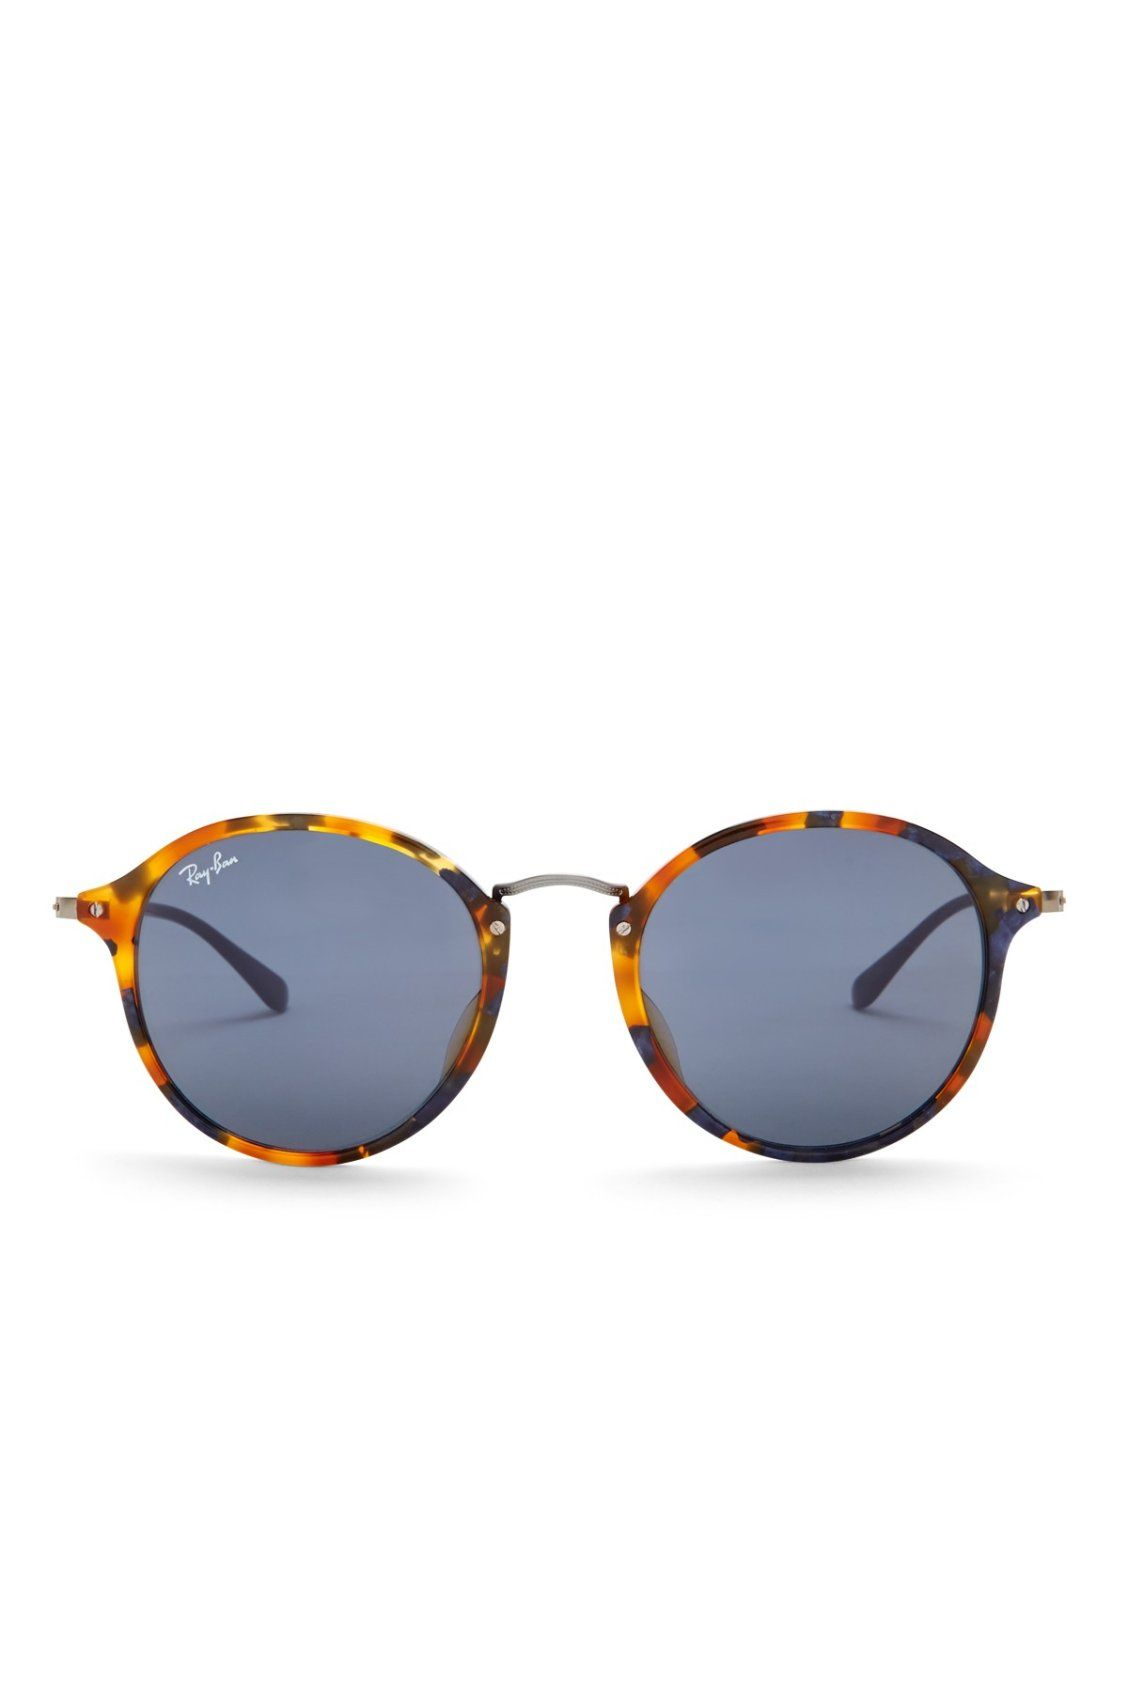 c165d19f22eaf Obsessed with these Ray-Ban Women s Fleck Round Sunglasses Ray Ban Pour  Femmes